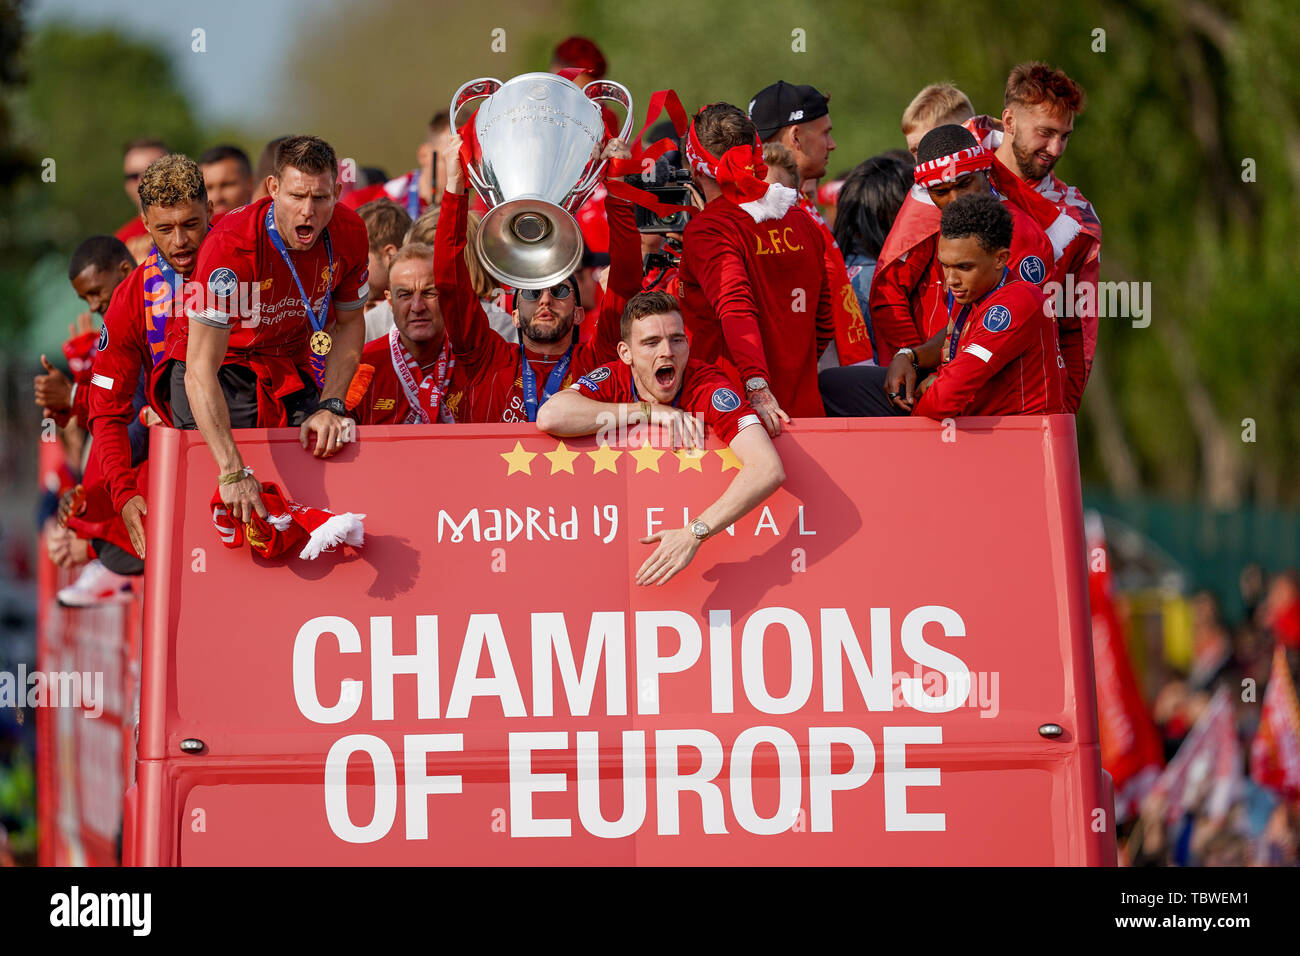 2nd june 2019 liverpool england uefa champions league liverpool fc champions league winners celebrations and open top bus parade credit terry donnelly news images stock photo alamy https www alamy com 2nd june 2019 liverpool england uefa champions league liverpool fc champions league winners celebrations and open top bus parade credit terry donnellynews images image248266705 html